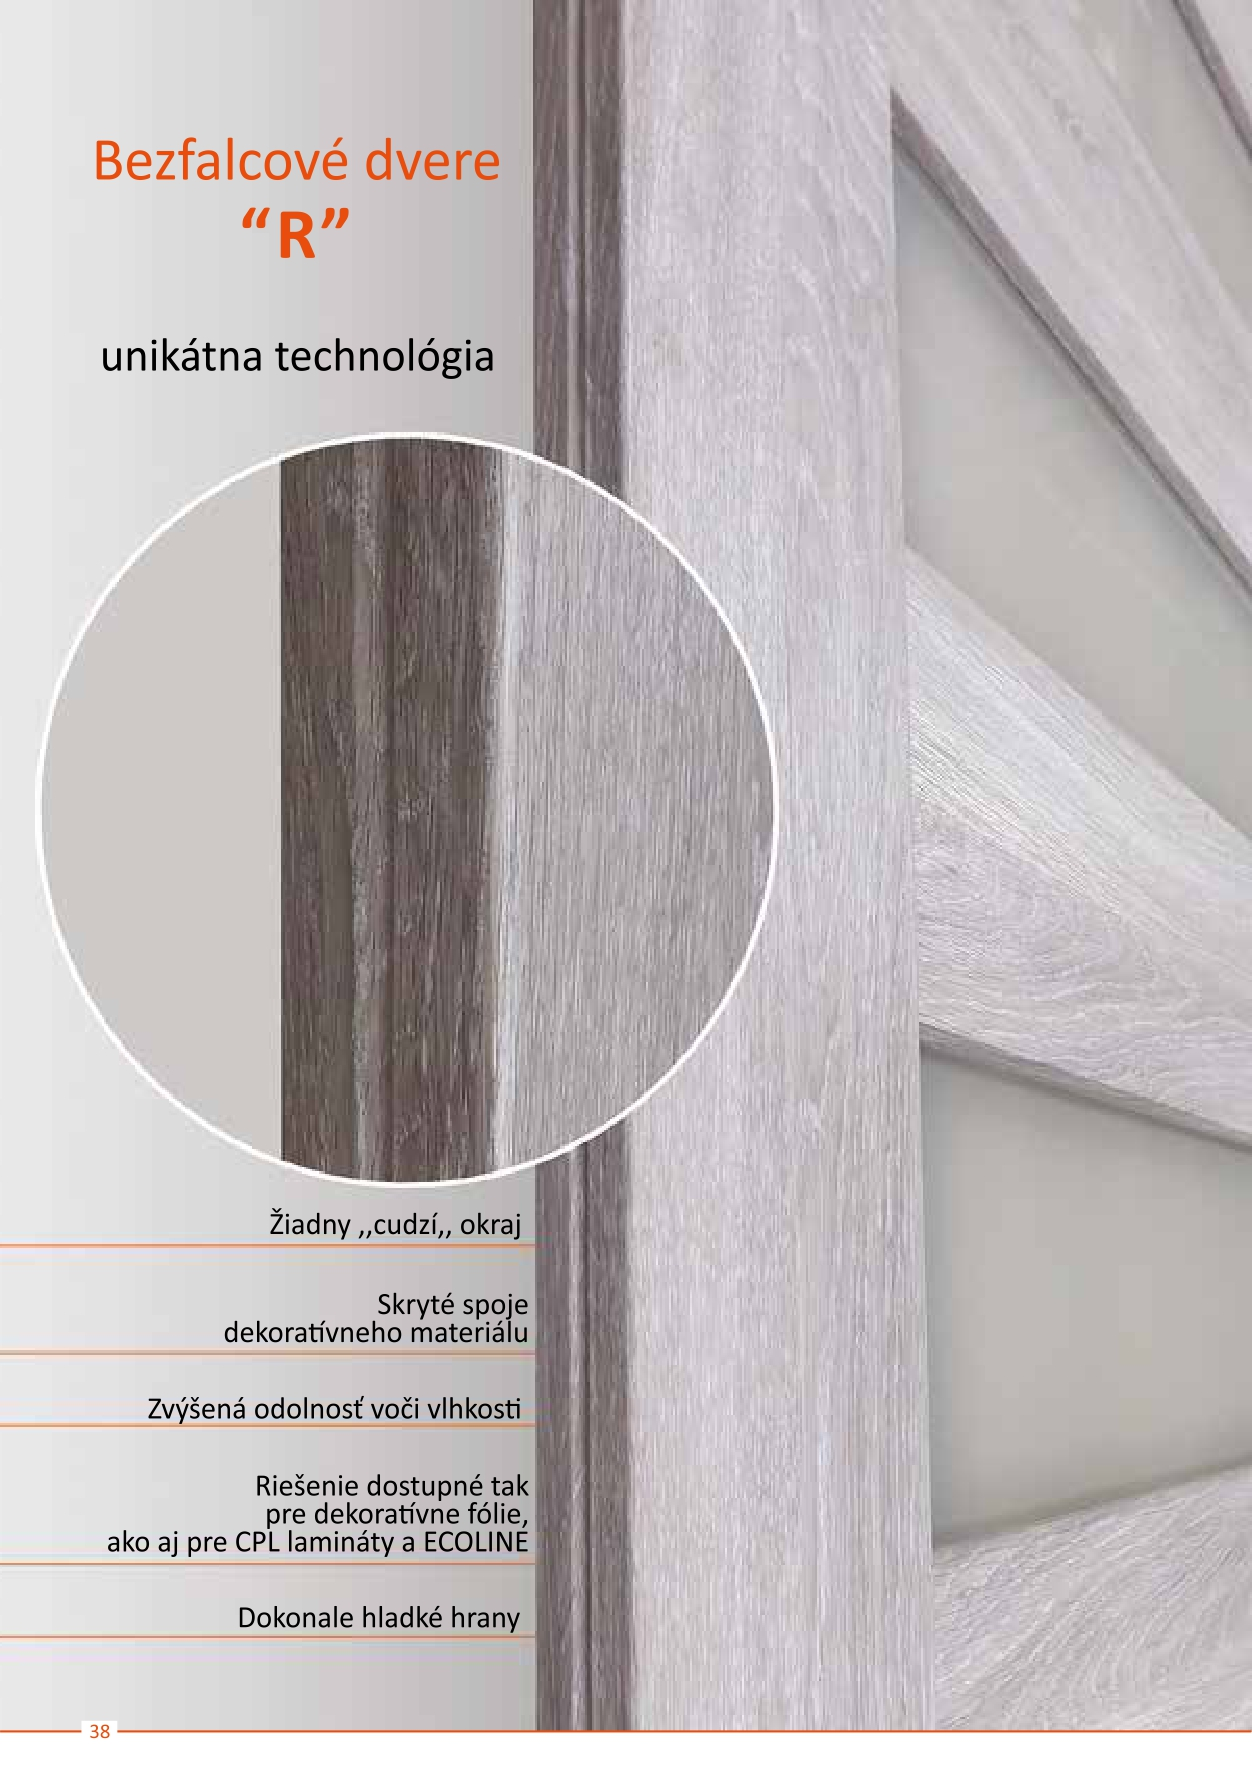 Perfectdoor katalog  1 2019 pages-to-jpg-0038